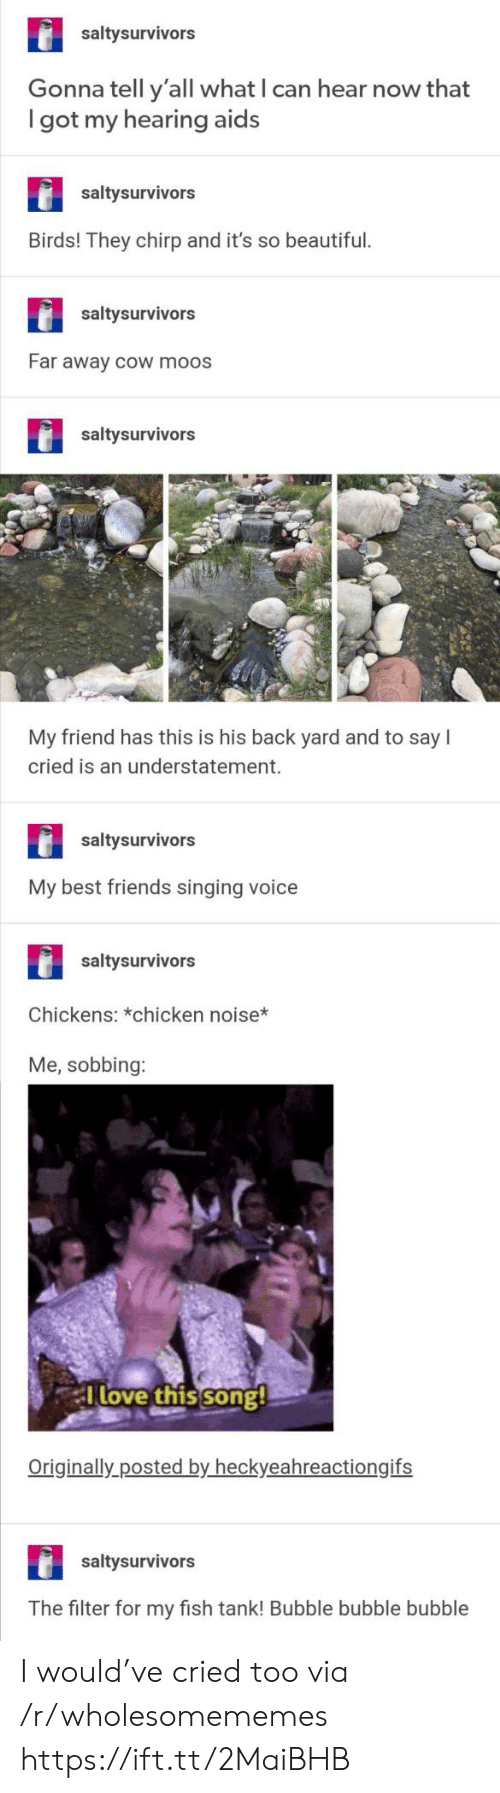 Can Hear: saltysurvivors  Gonna tell y'all what I can hear now that  got my hearing aids  saltysurvivors  Birds! They chirp and it's so beautiful.  saltysurvivors  Far away cOw moos  saltysurvivors  My friend has this is his back yard and to say  cried is an understatement.  saltysurvivors  My best friends singing voice  saltysurvivors  Chickens: *chicken noise*  Me, sobbing:  Tlove this song!  Originally posted by heckyeahreactiongifs  saltysurvivors  The filter for my fish tank! Bubble bubble bubble I would've cried too via /r/wholesomememes https://ift.tt/2MaiBHB